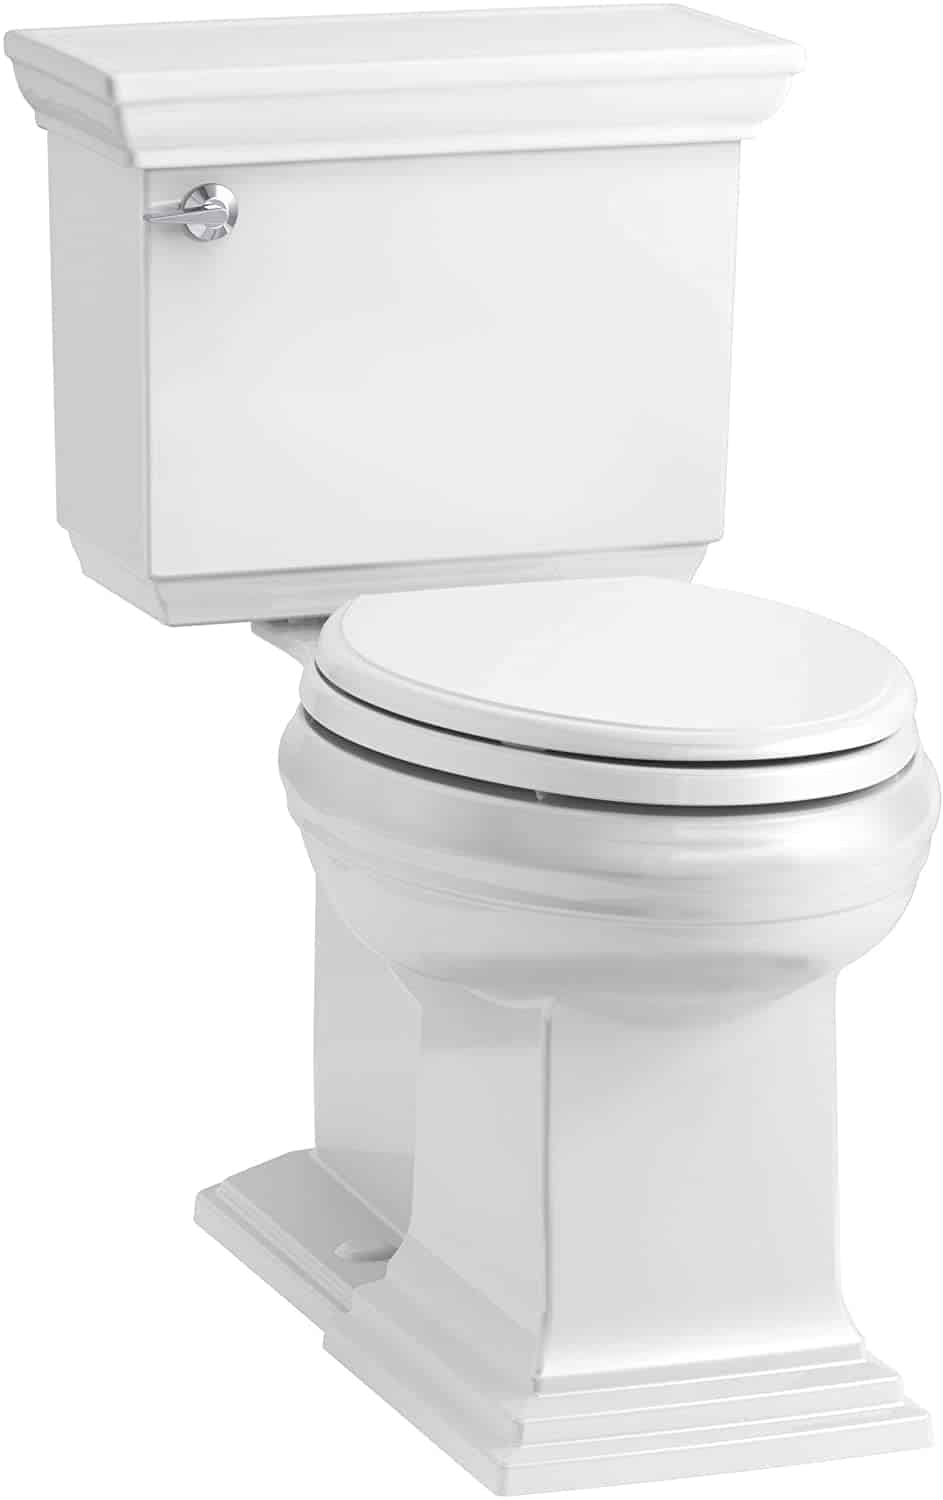 Toilets For Big And Tall